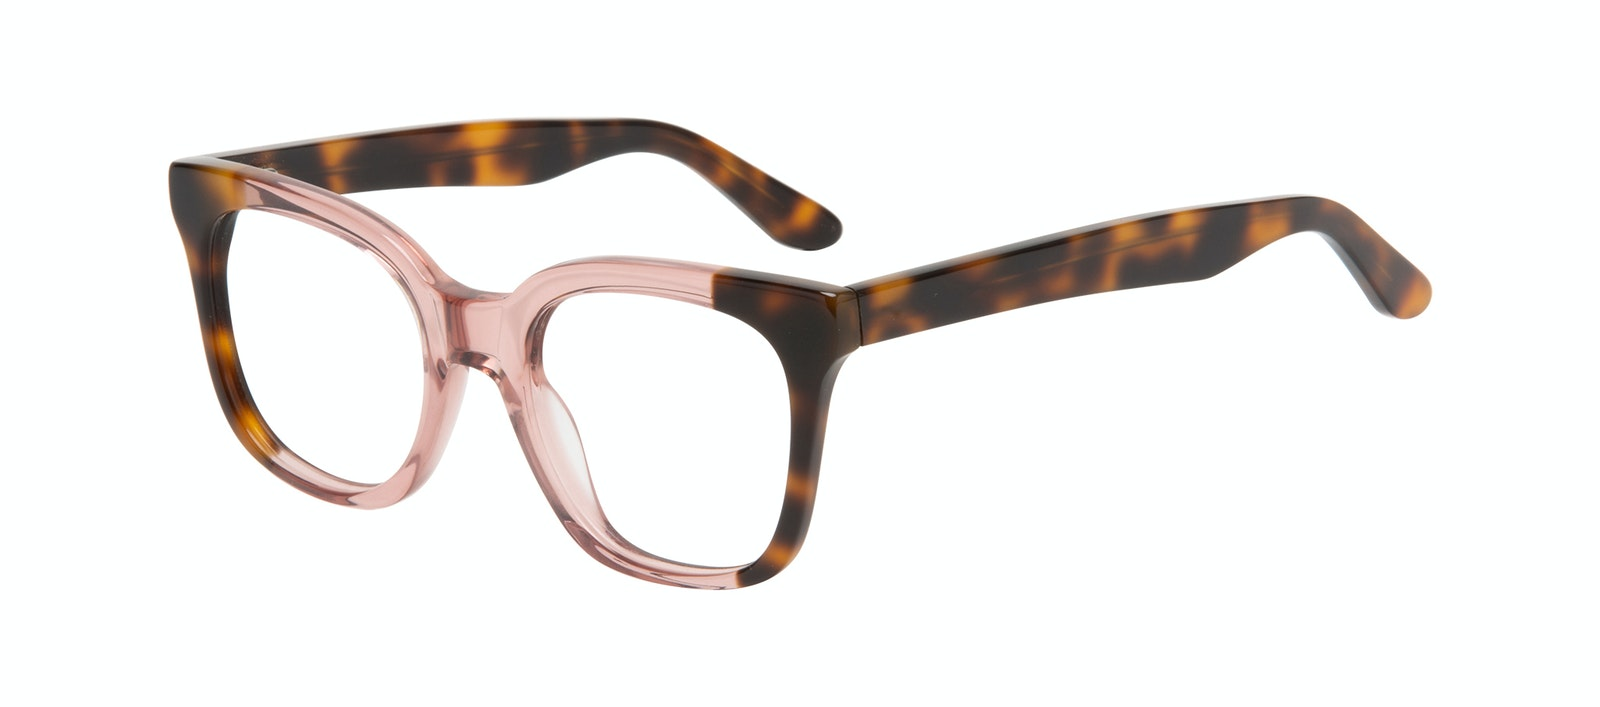 Affordable Fashion Glasses Square Eyeglasses Women Mighty Rose Tort Tilt